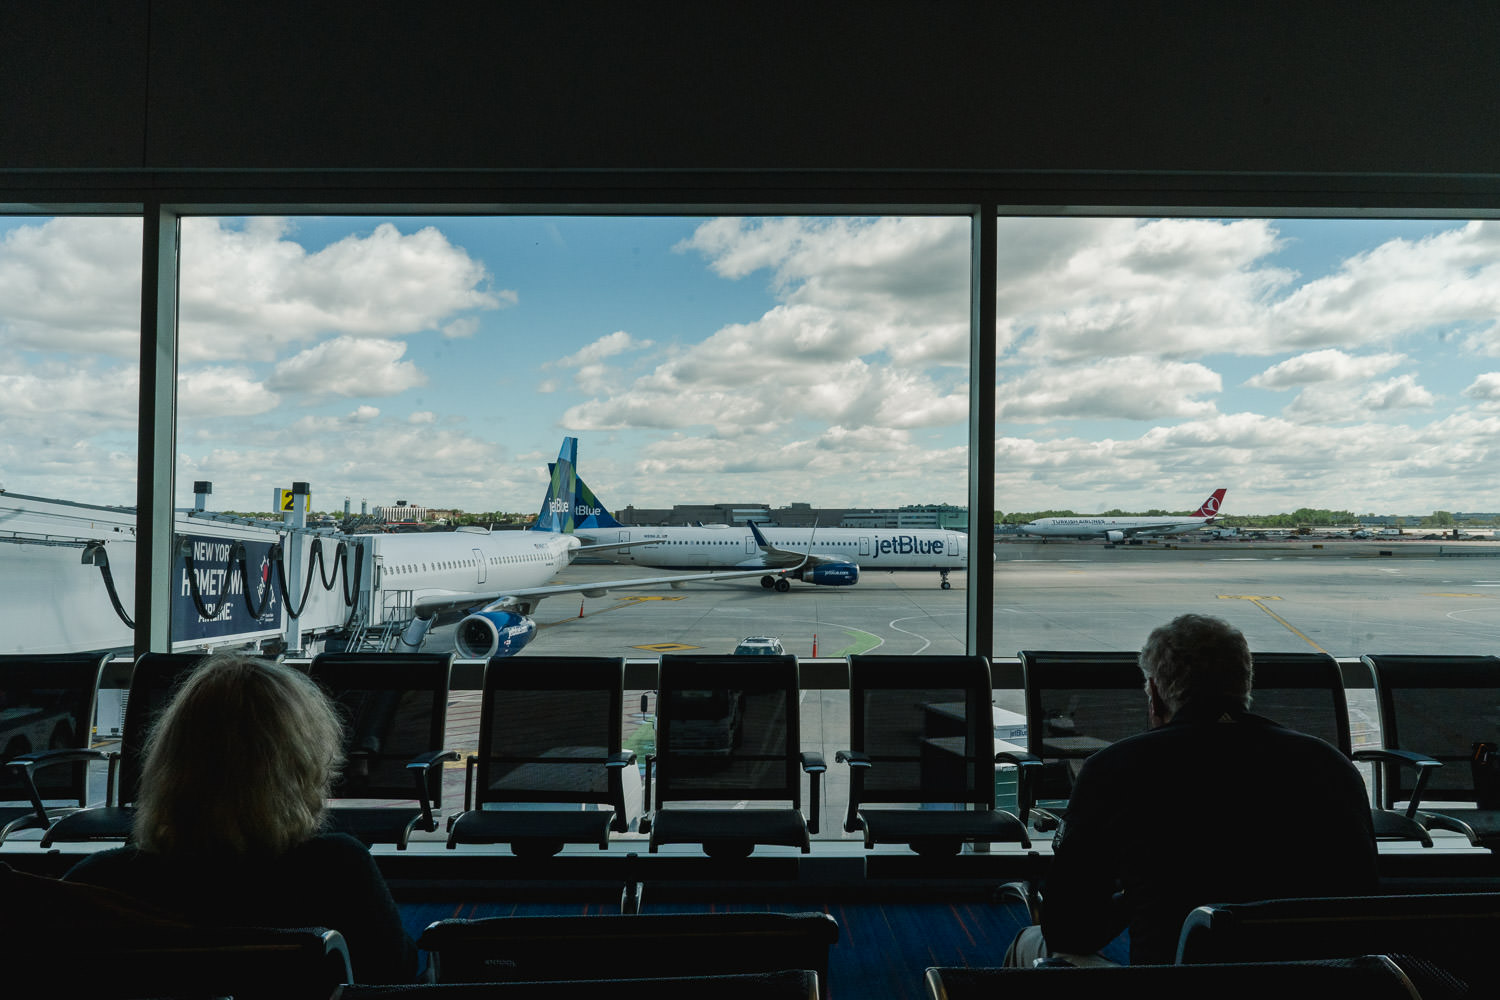 A view out the window at JFK airport.